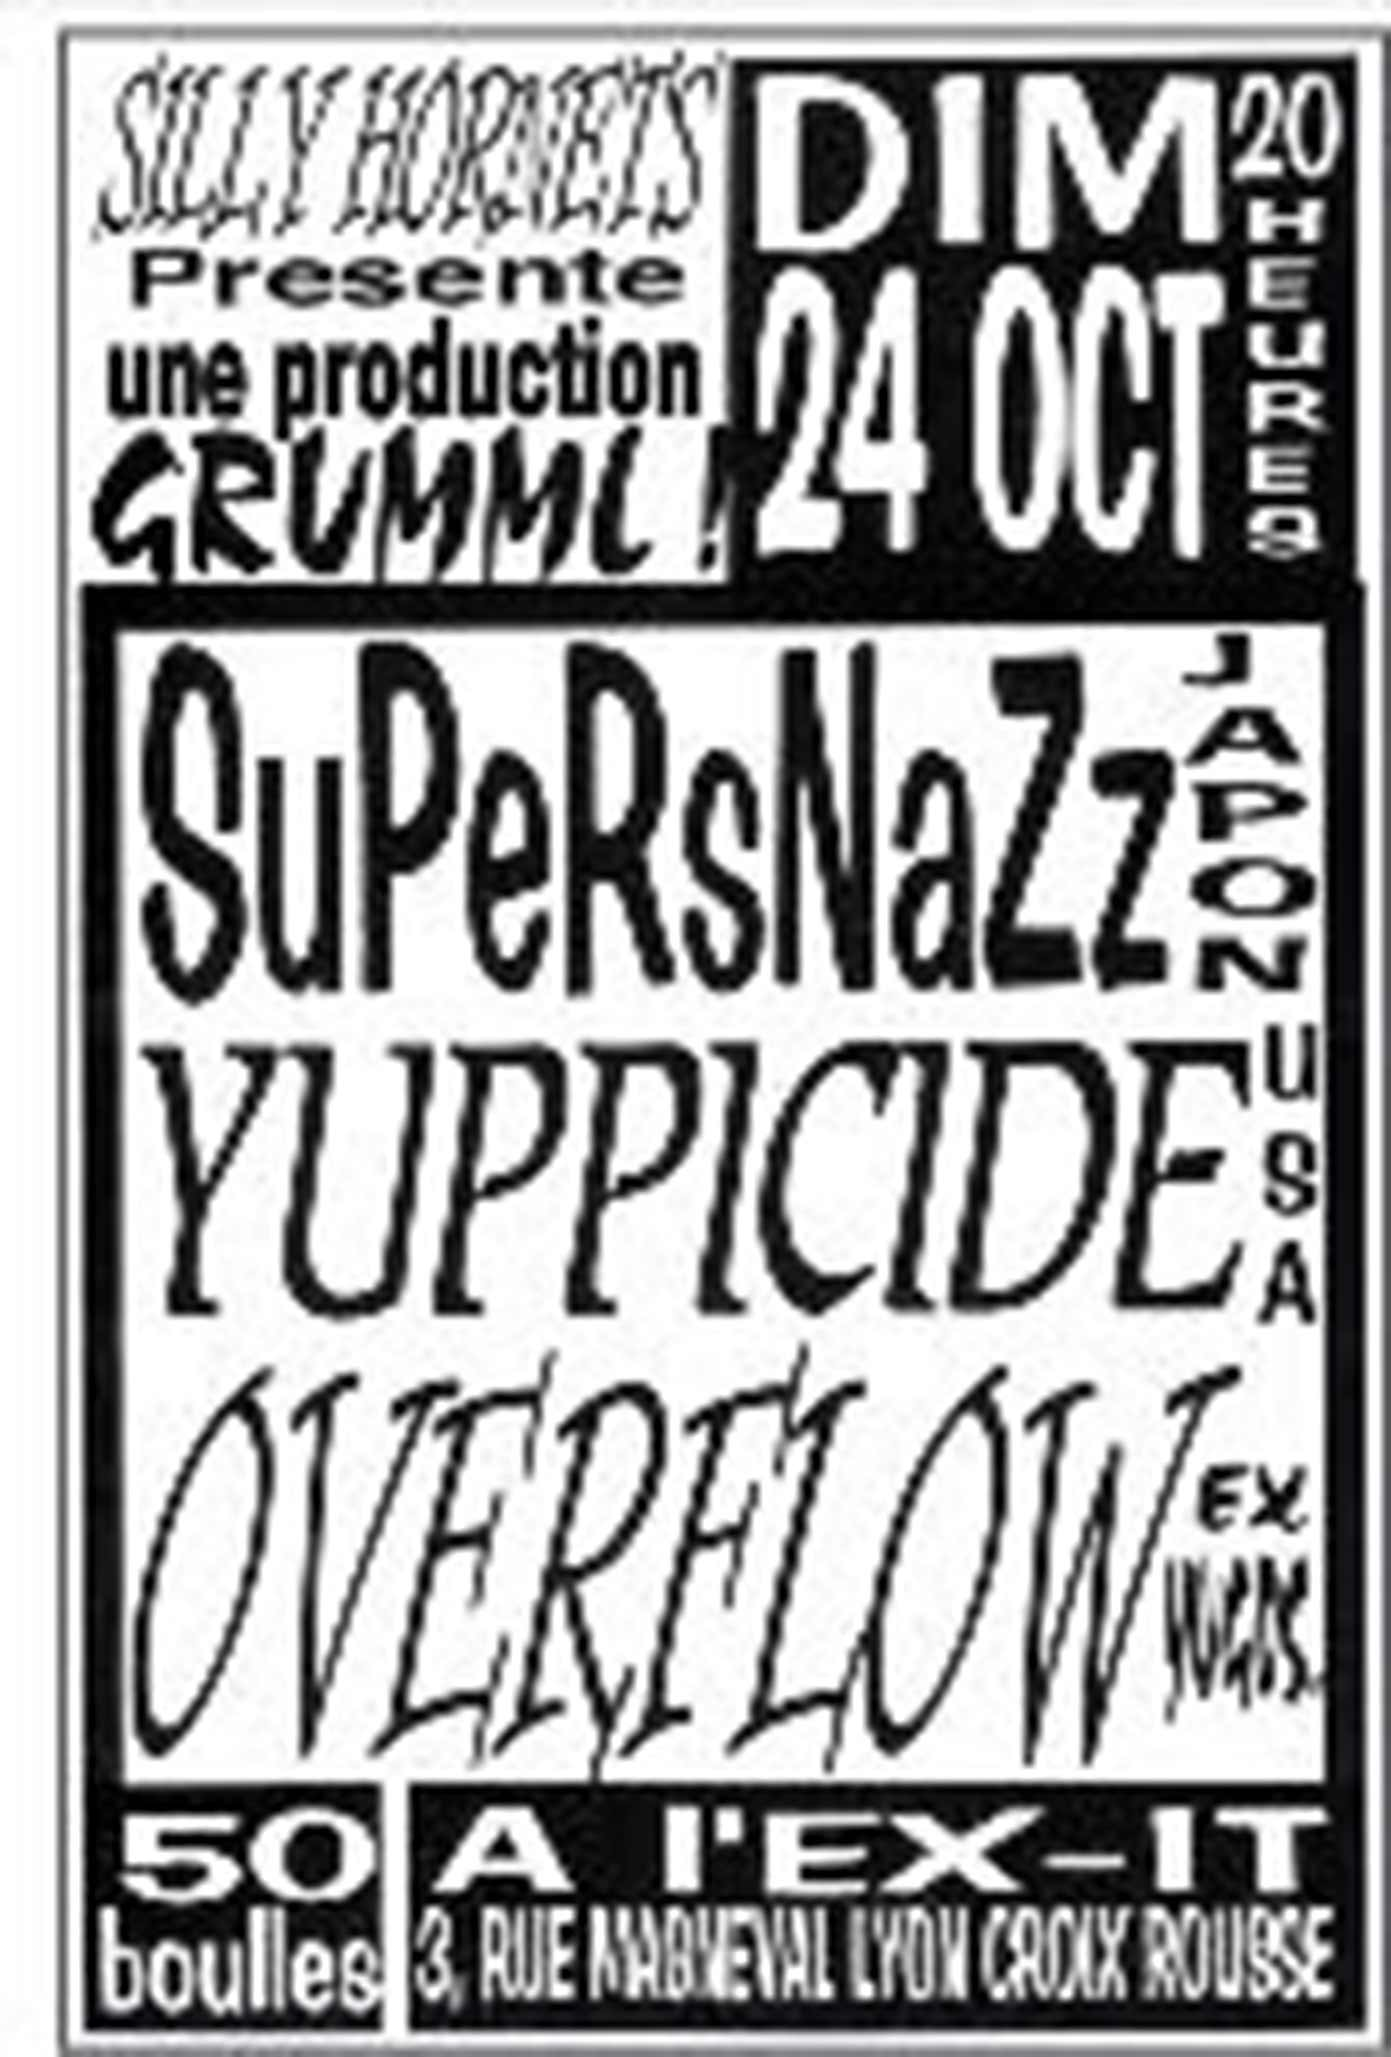 "24 octobre 1993 Supersnazz, Yuppicide, Overflow à Lyon ""l'Ex-it"""